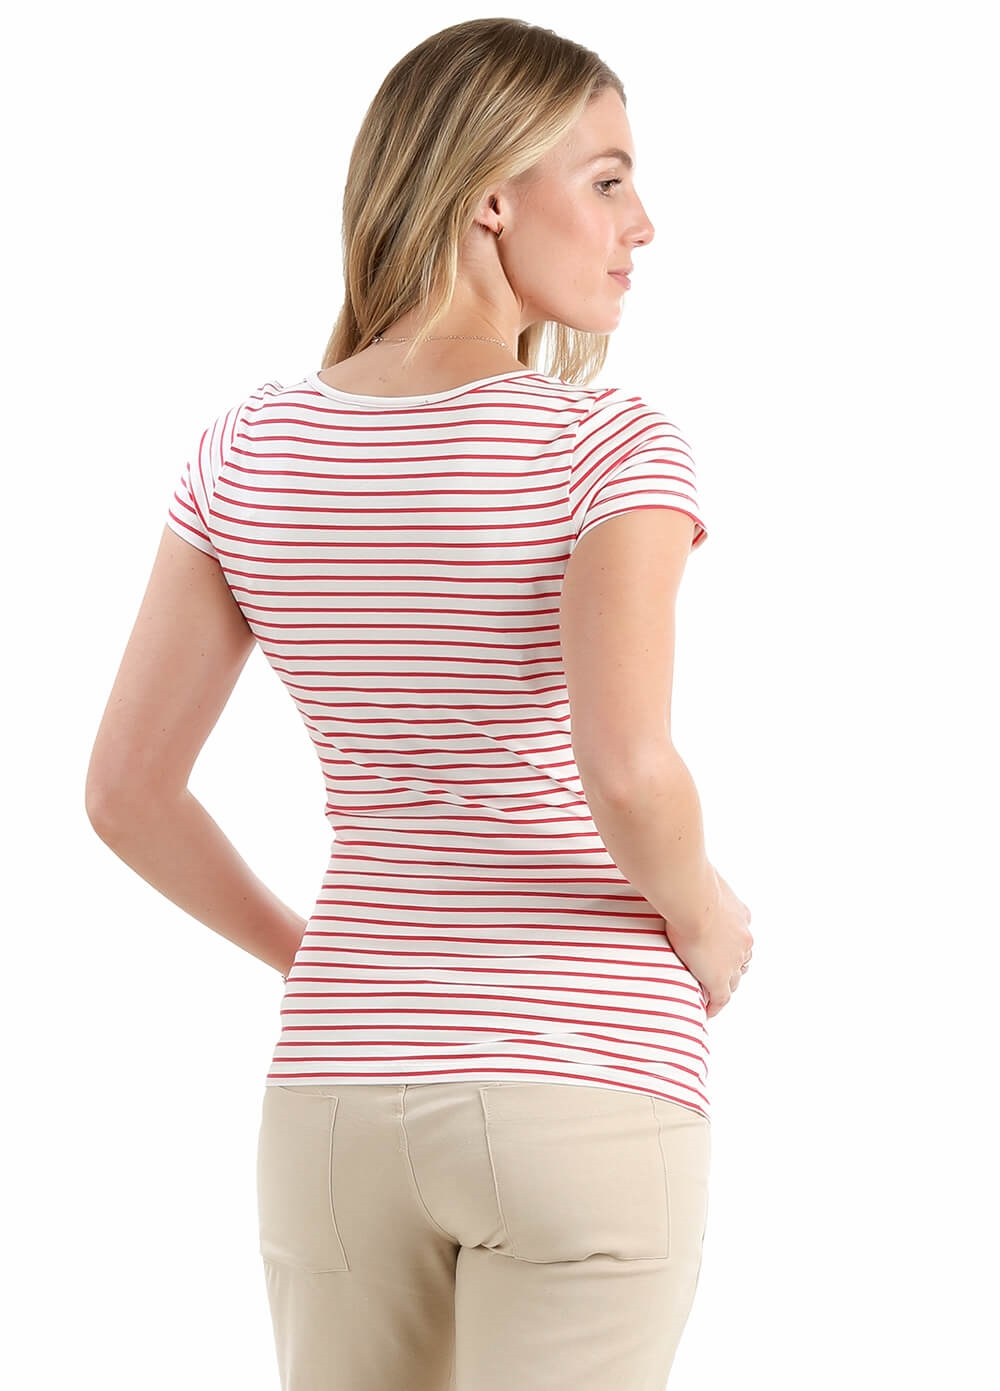 Lily Dream Maternity Tee in Pink Stripe by Trimester Clothing